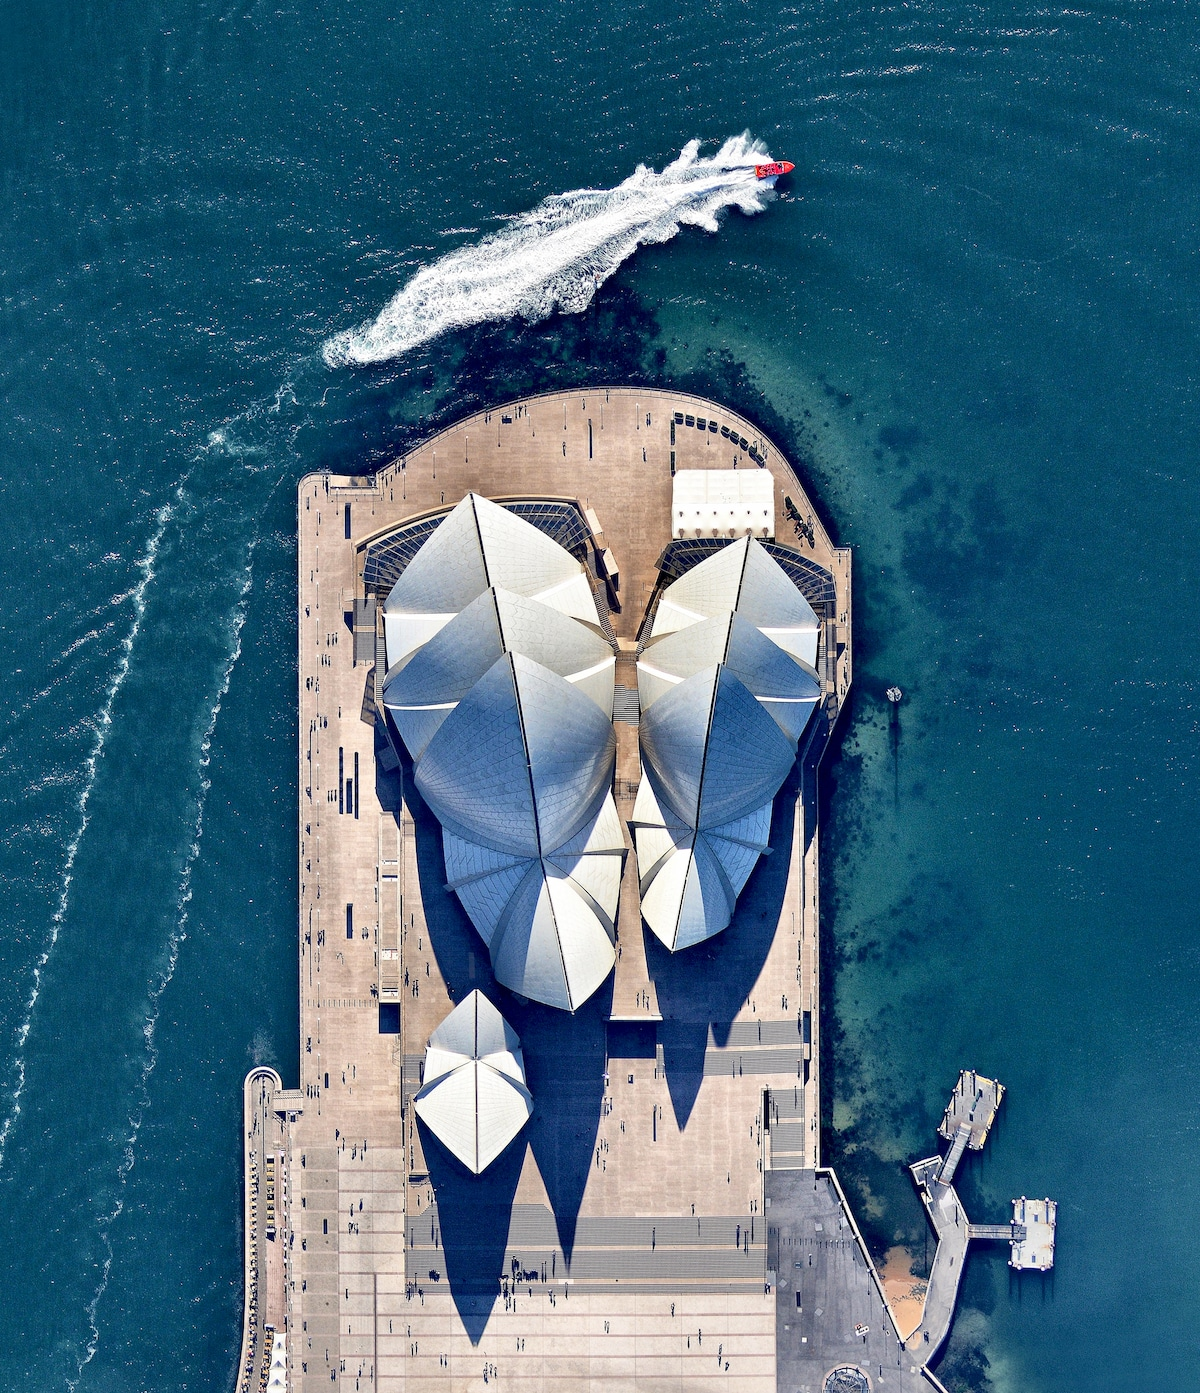 Aerial Photo of the Sydney Opera House